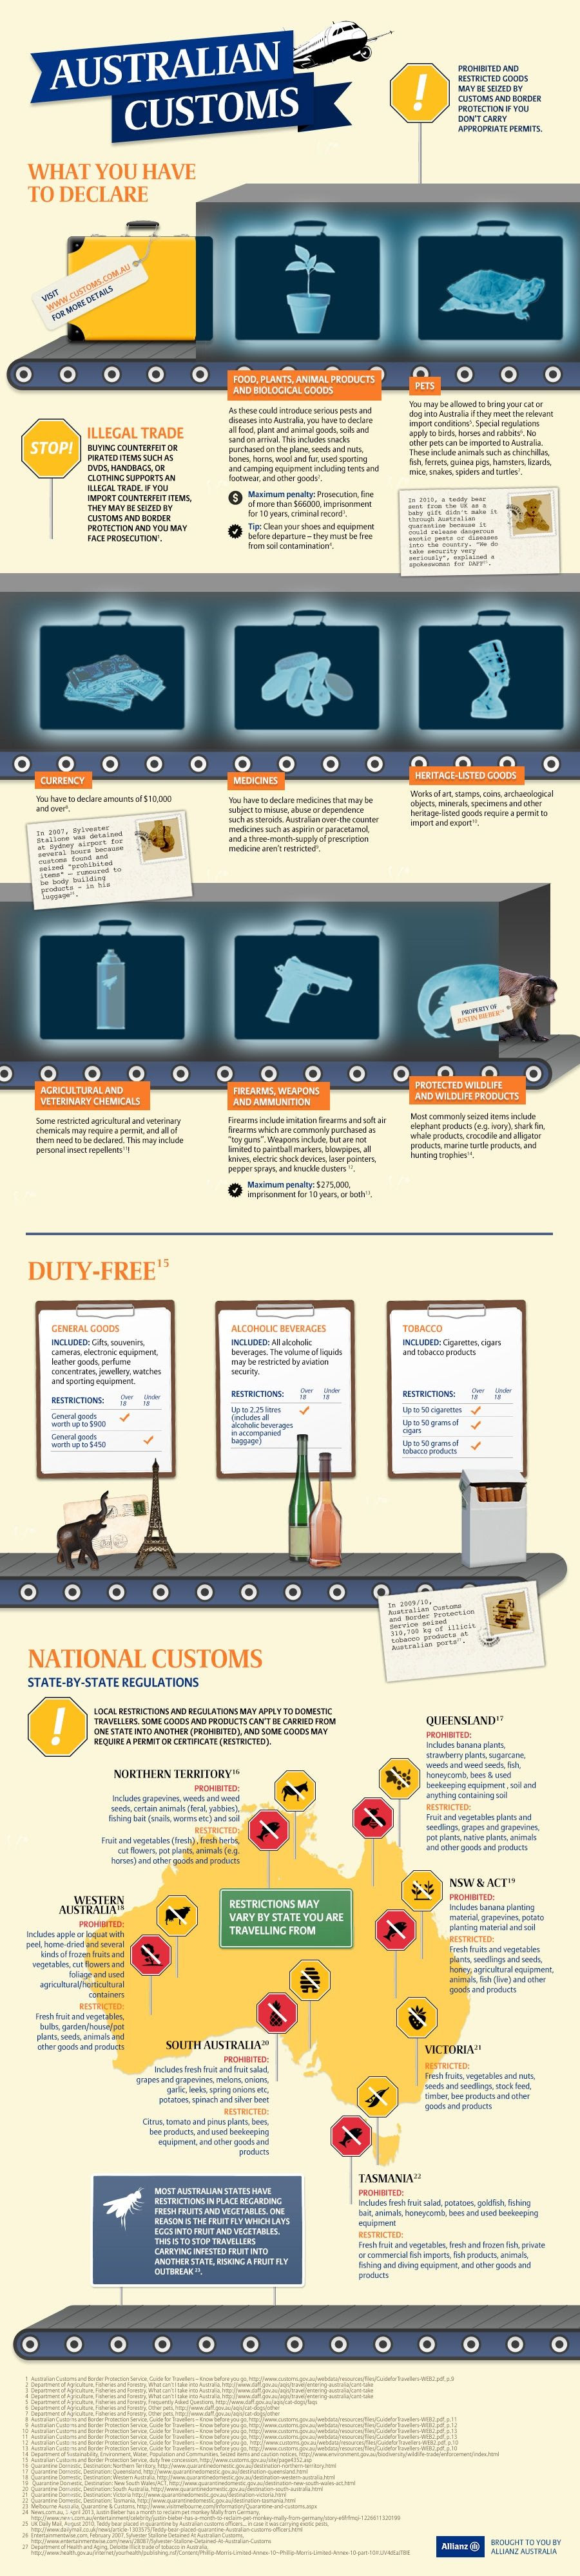 Infographic: Australian Customs: What You Must Declare